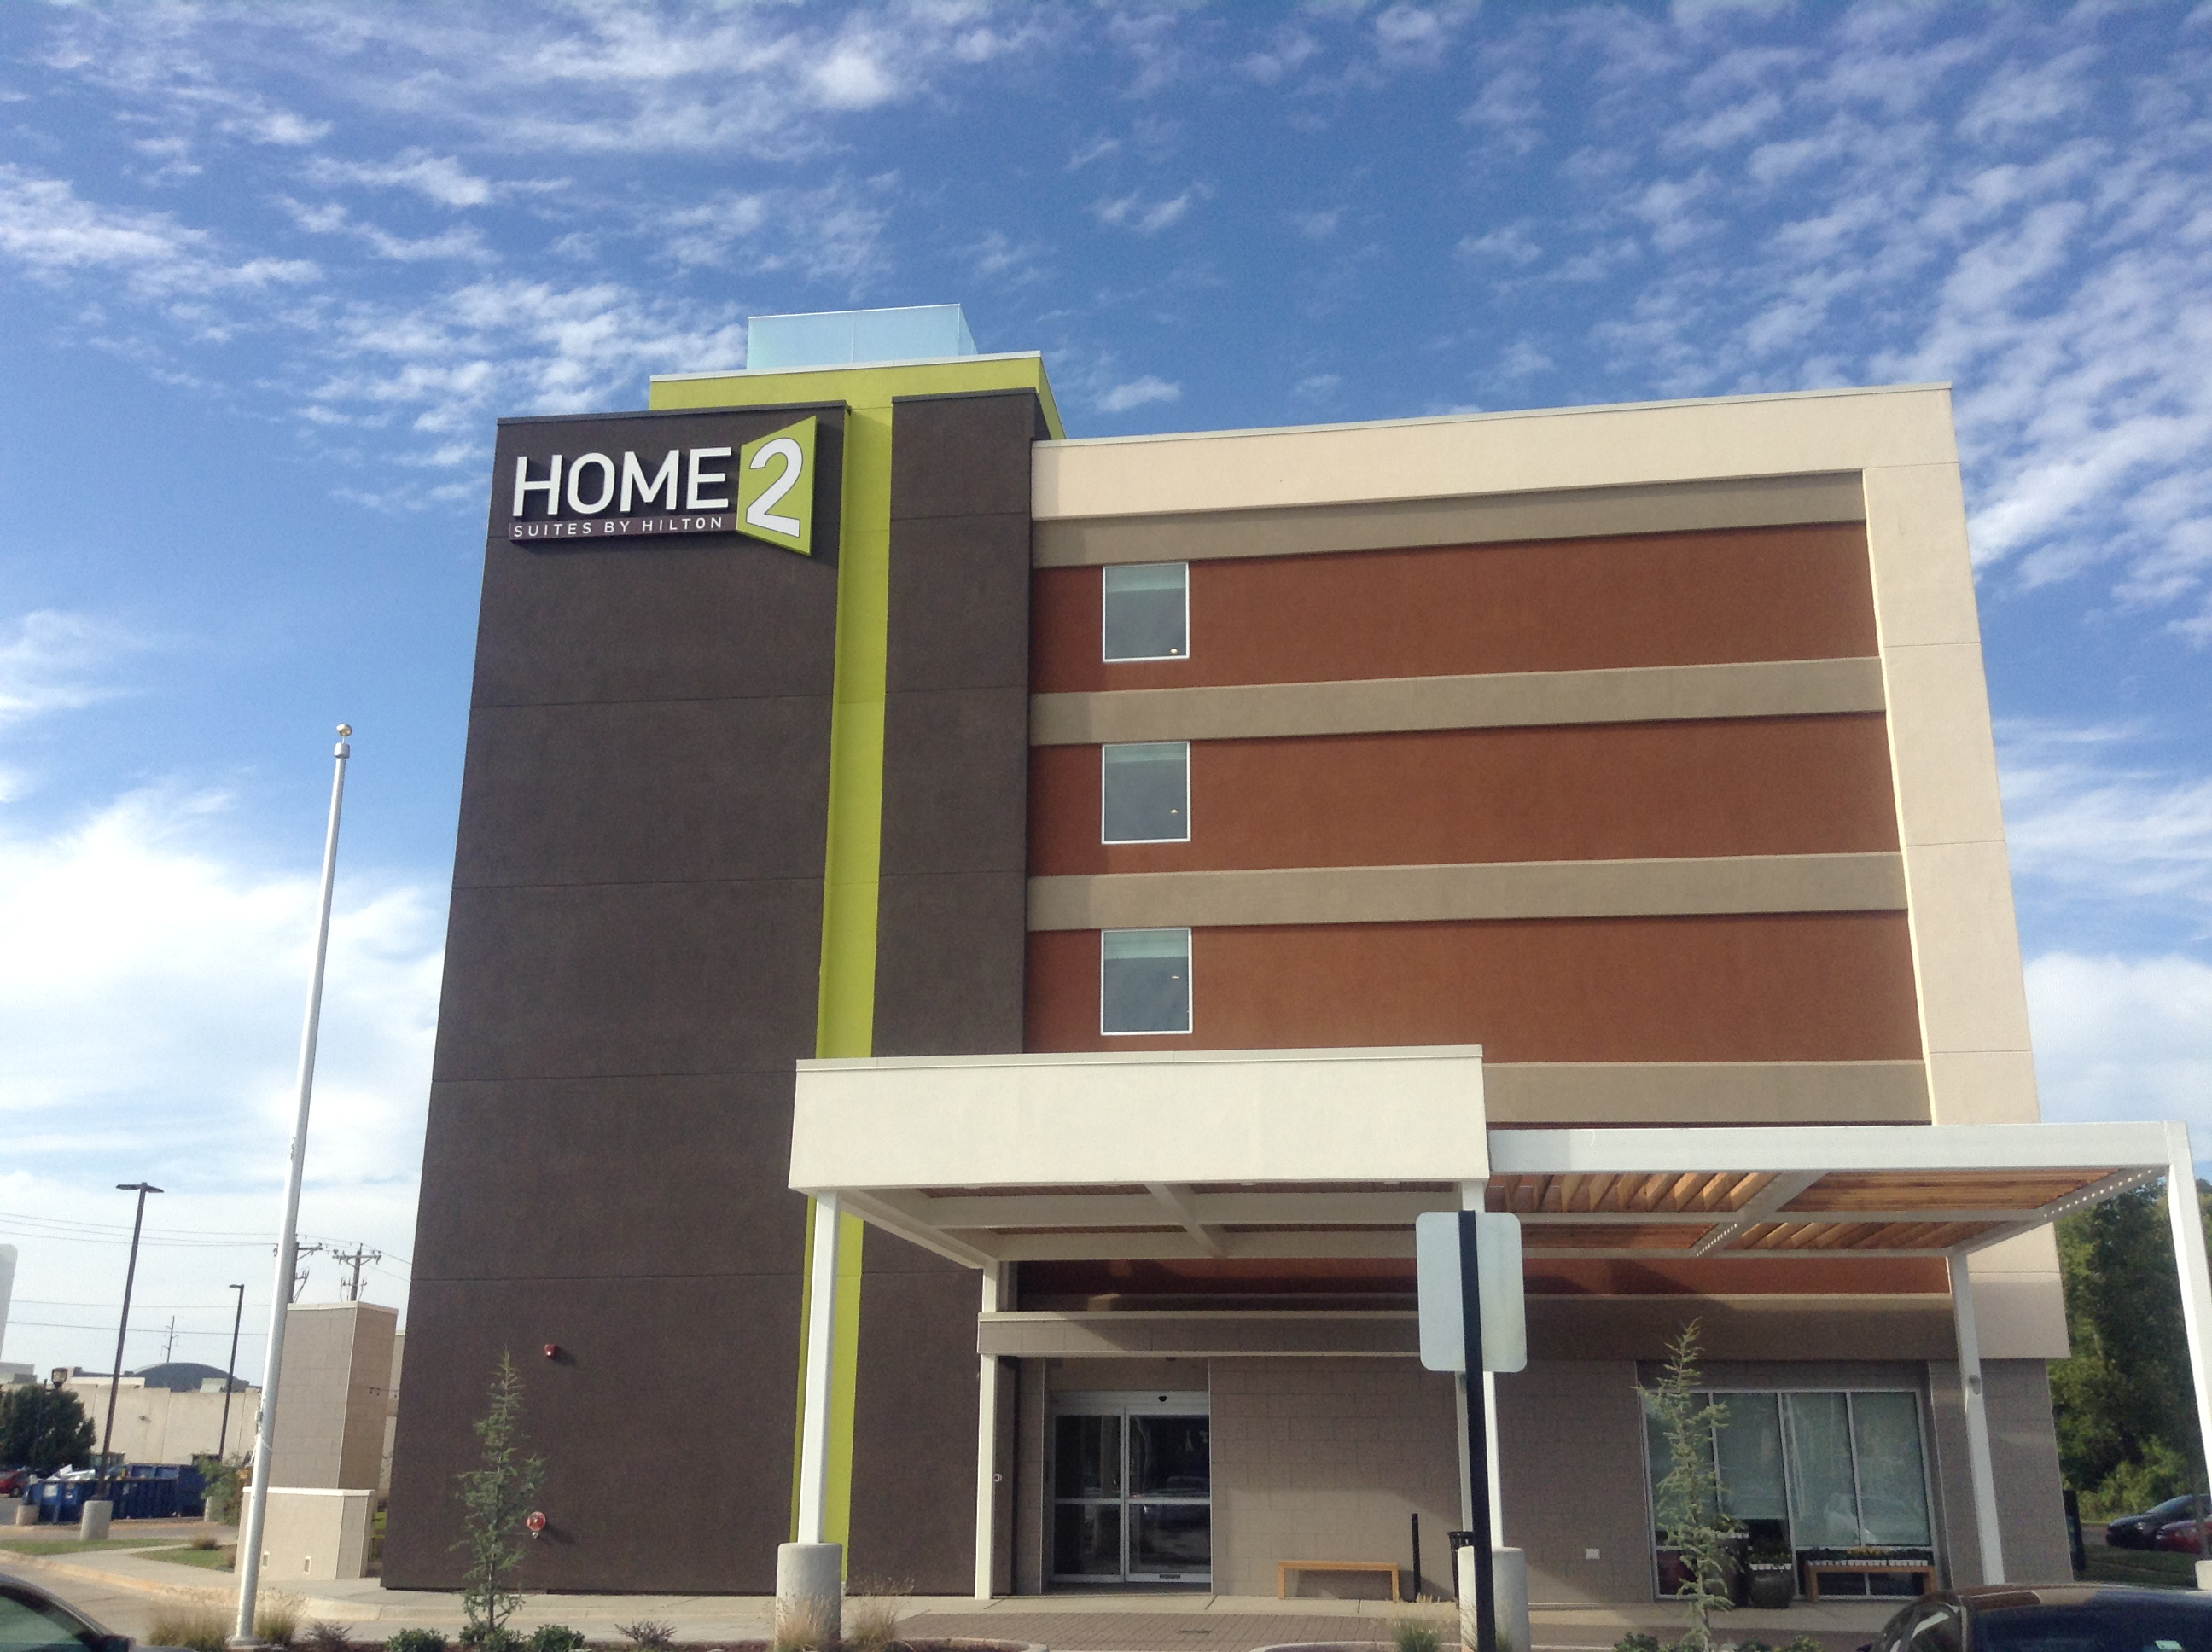 Home2 suites by hilton opens newest property in stillwater for Homes 2